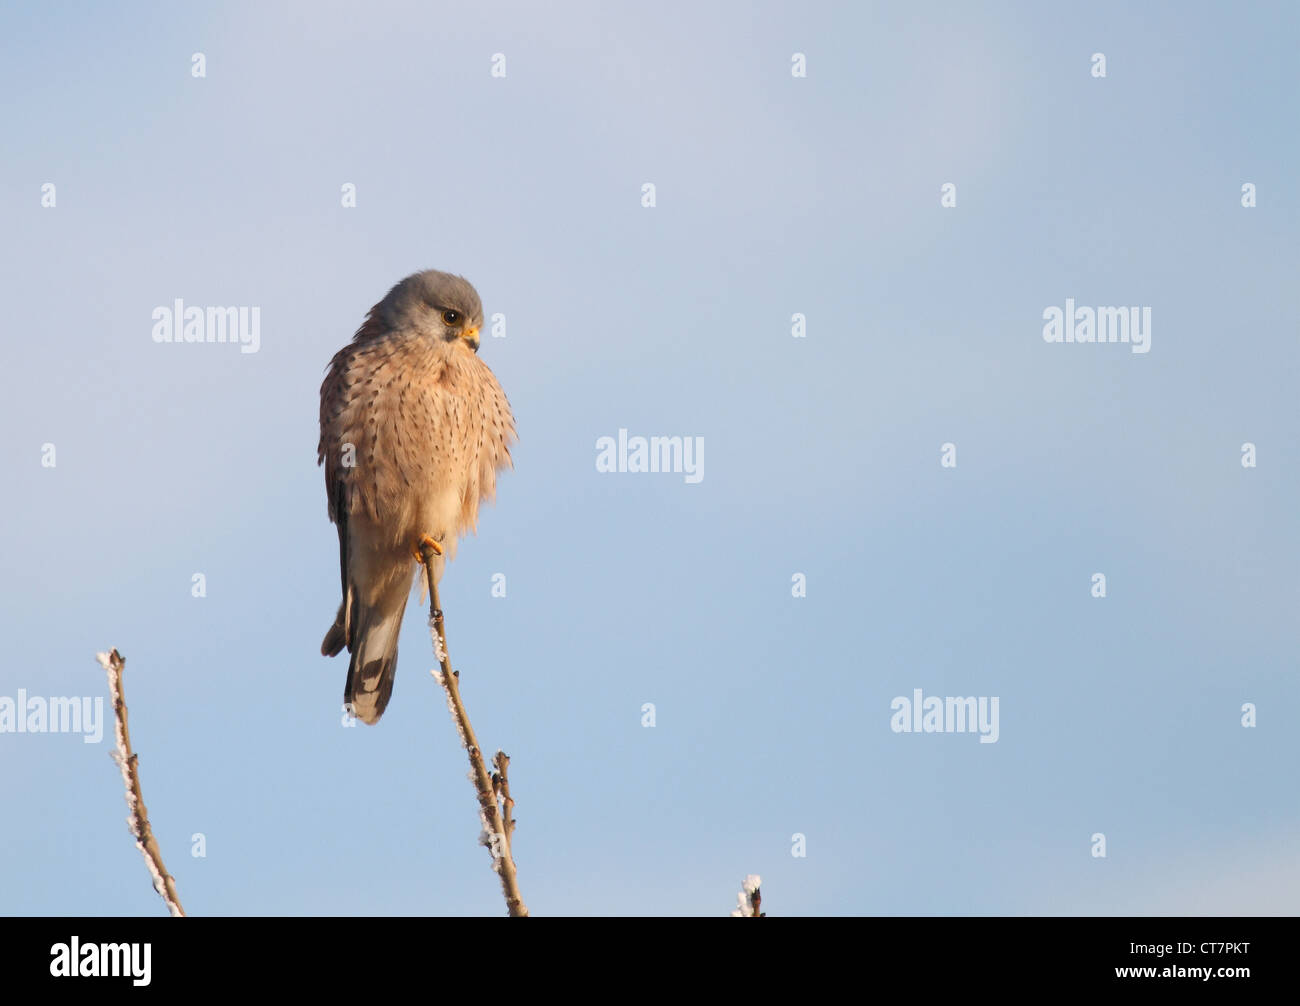 kestrel bird of prey perched on a twig against a pale blue sky - Stock Image